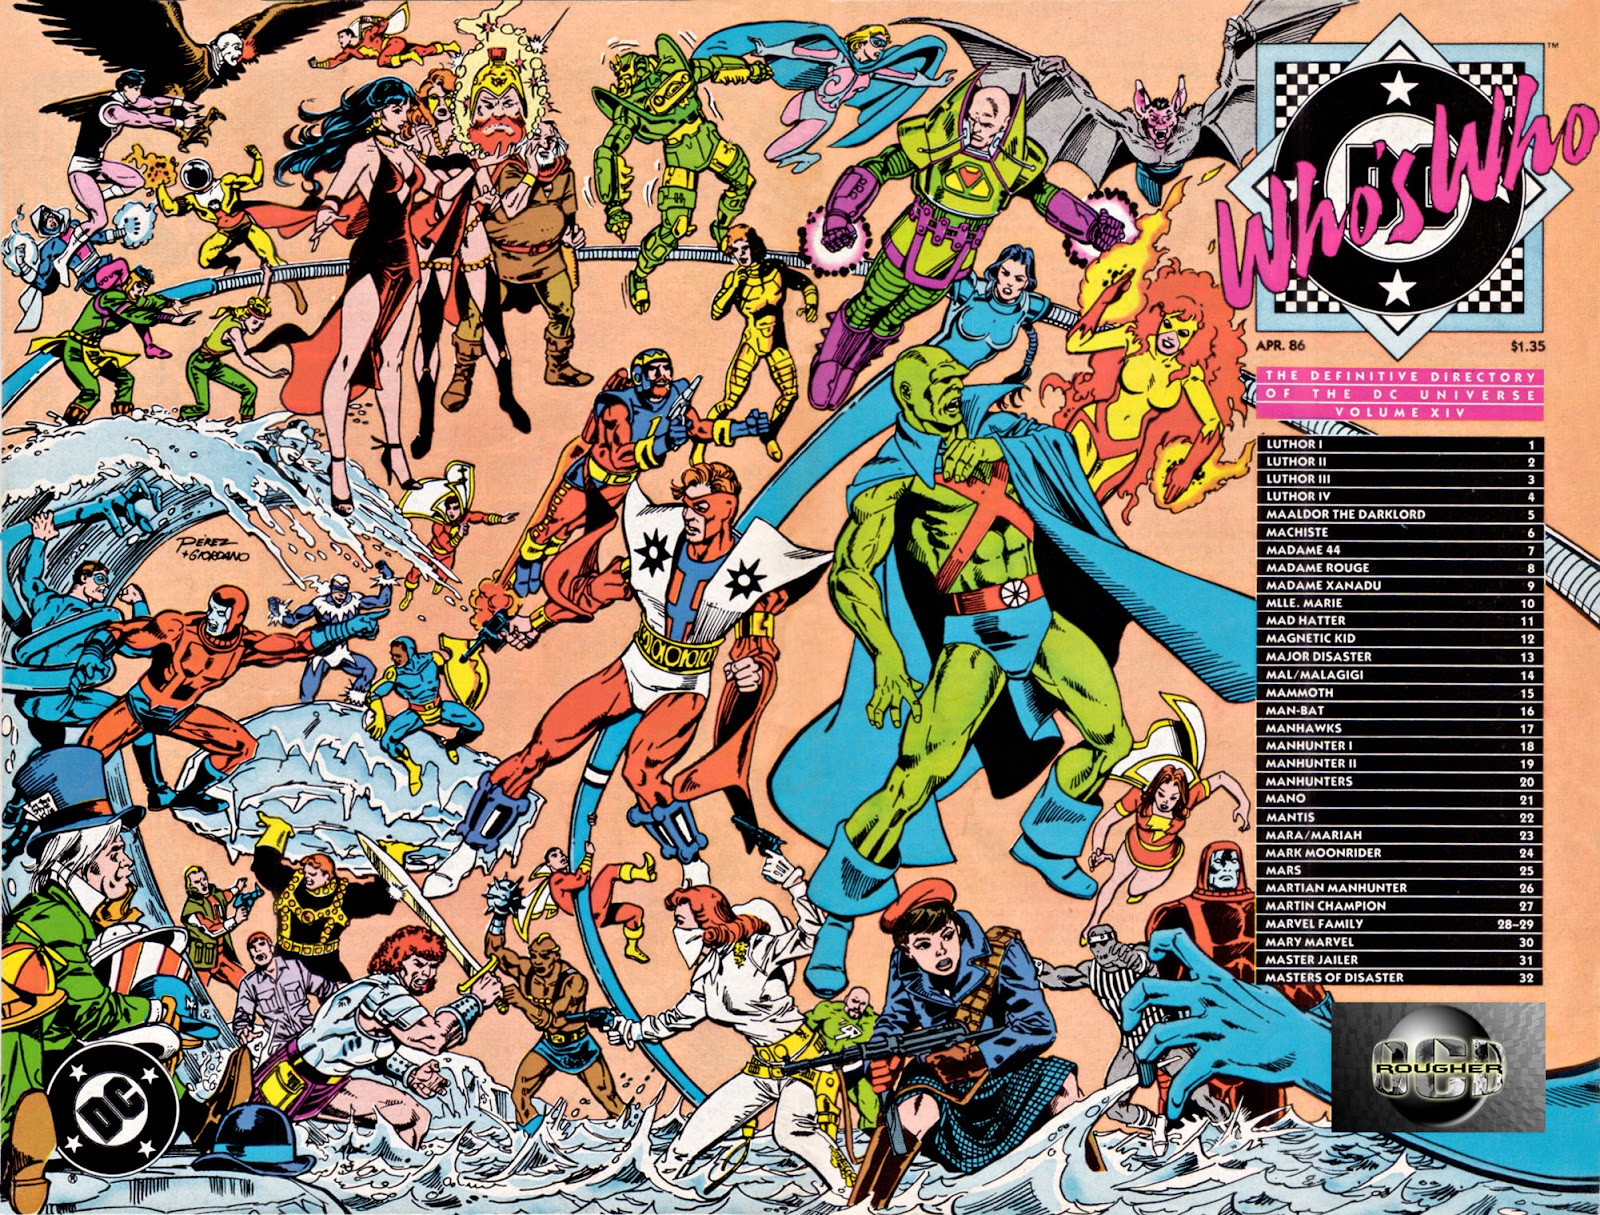 Whos Who: The Definitive Directory of the DC Universe 14 Page 1